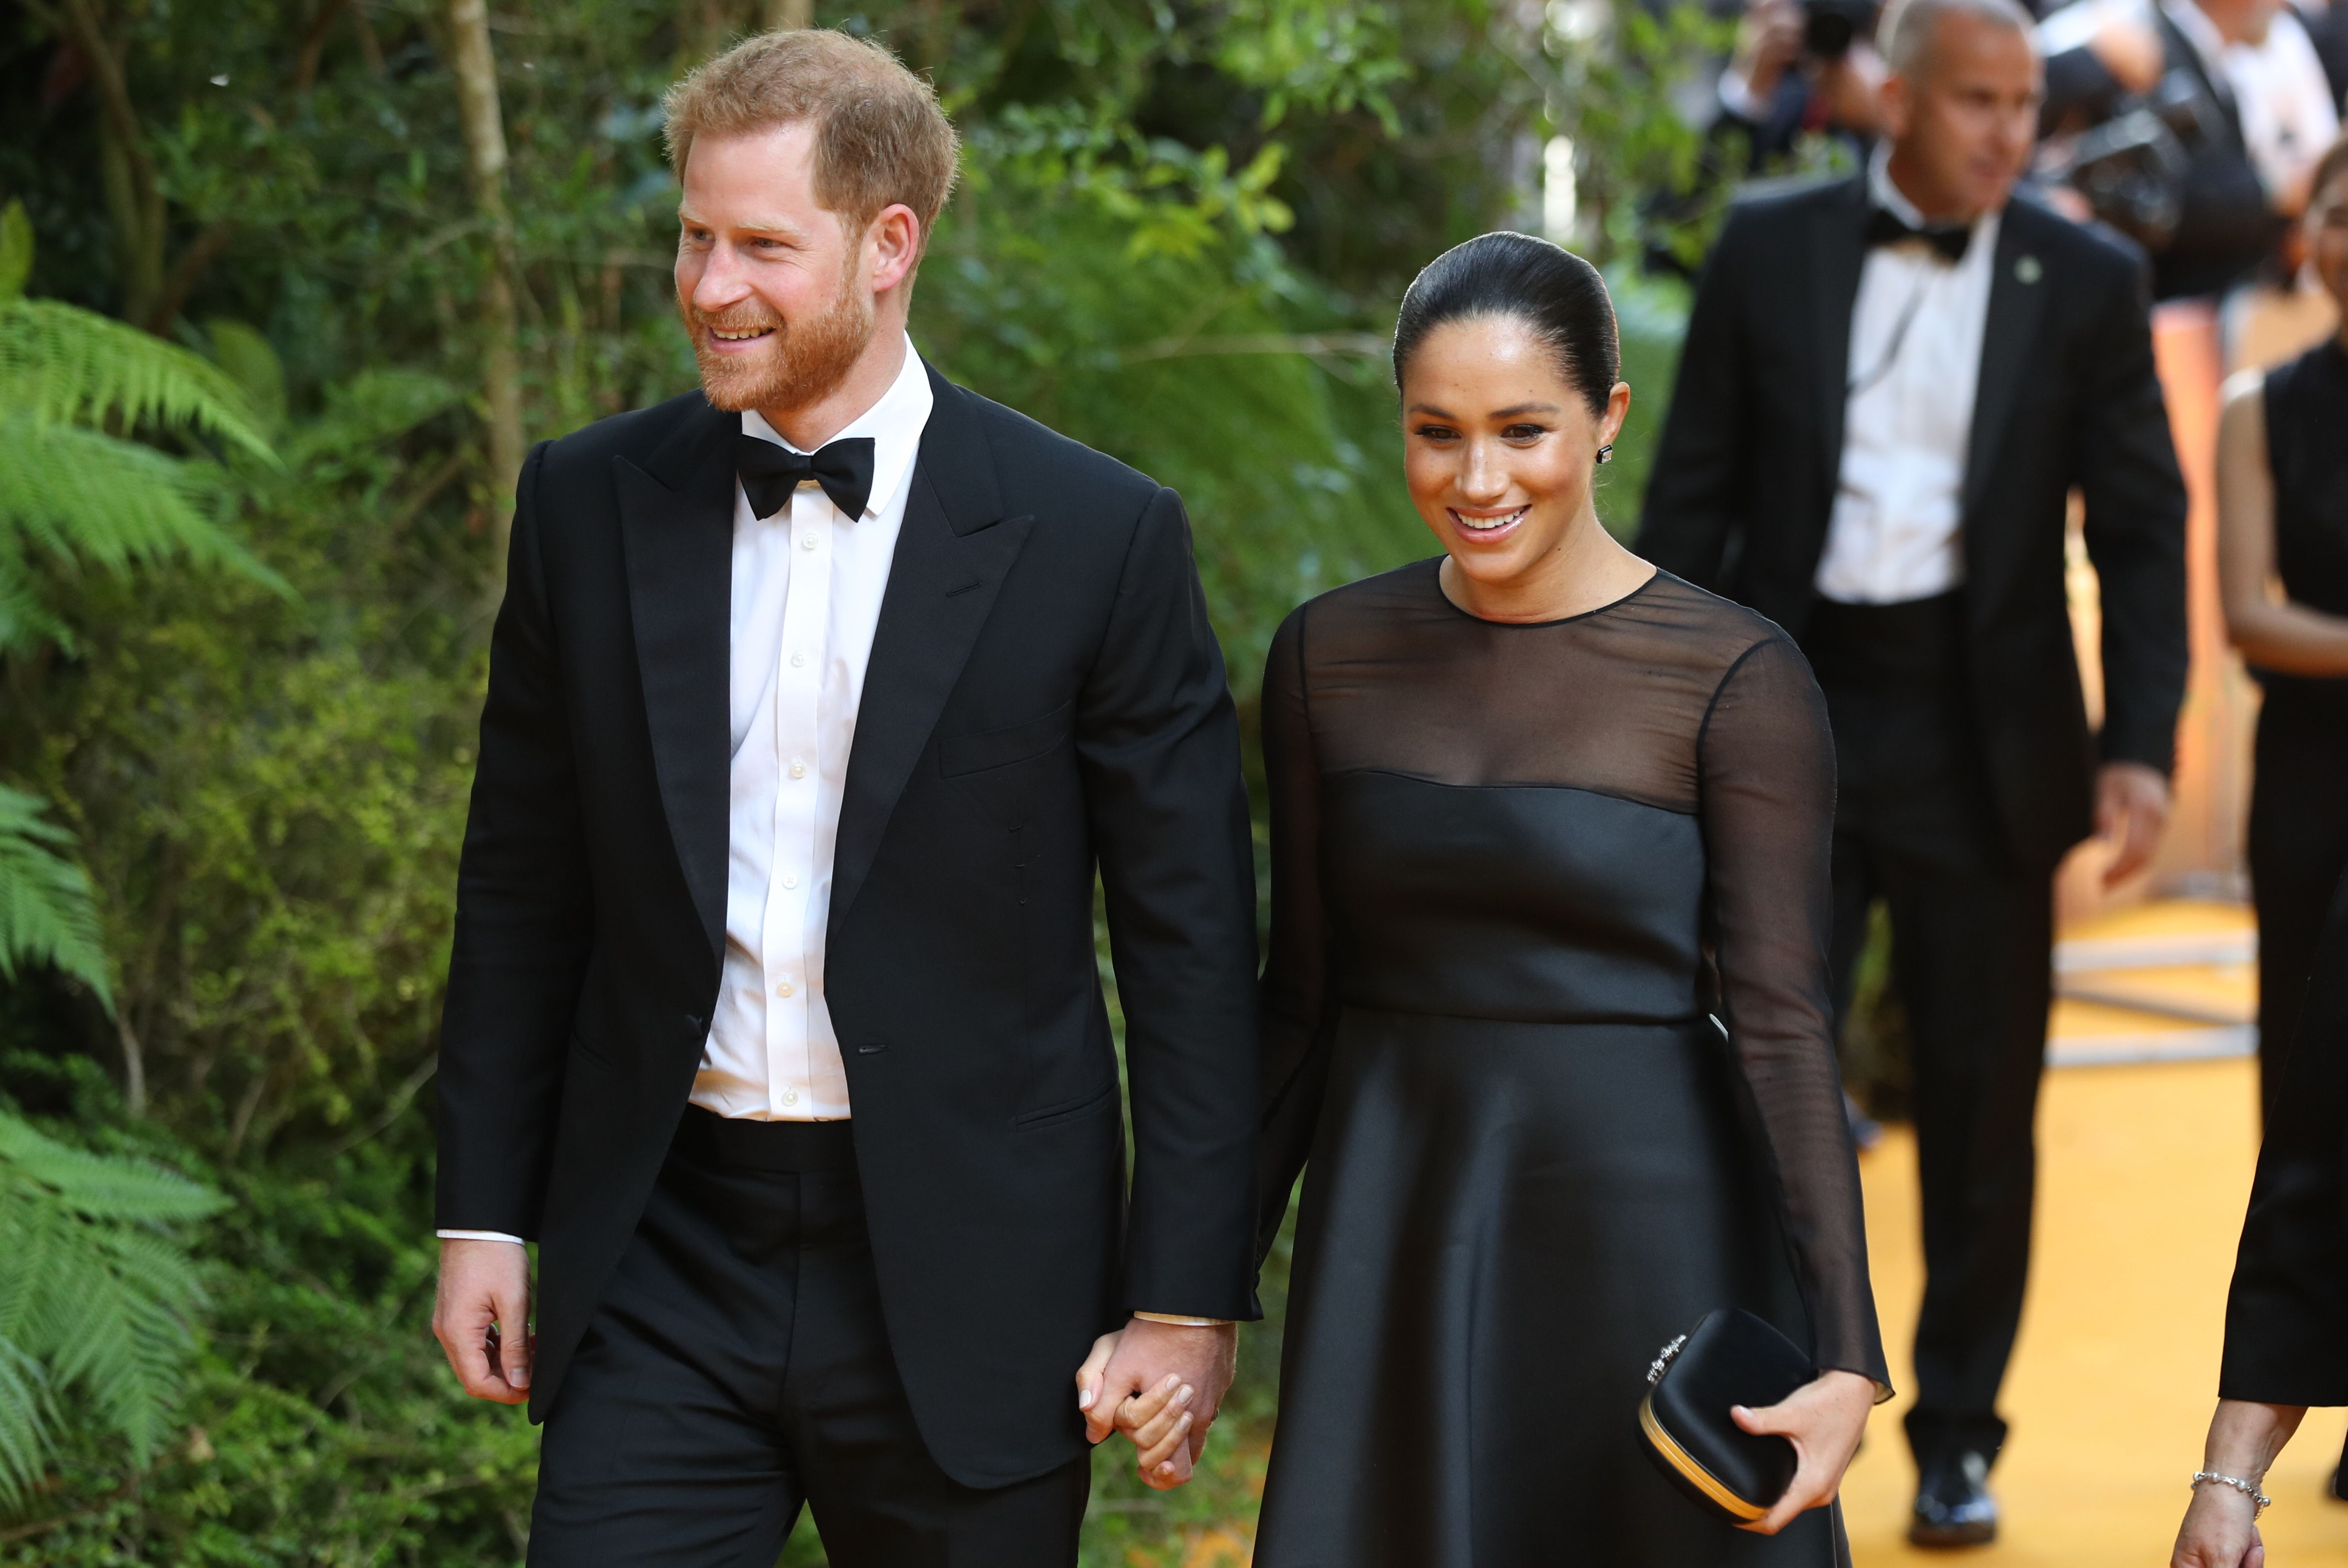 Prince Harry on Why He and Meghan Markle Plan to Only Have 'Two Children, Maximum' and Racism as an 'Unconscious Bias'